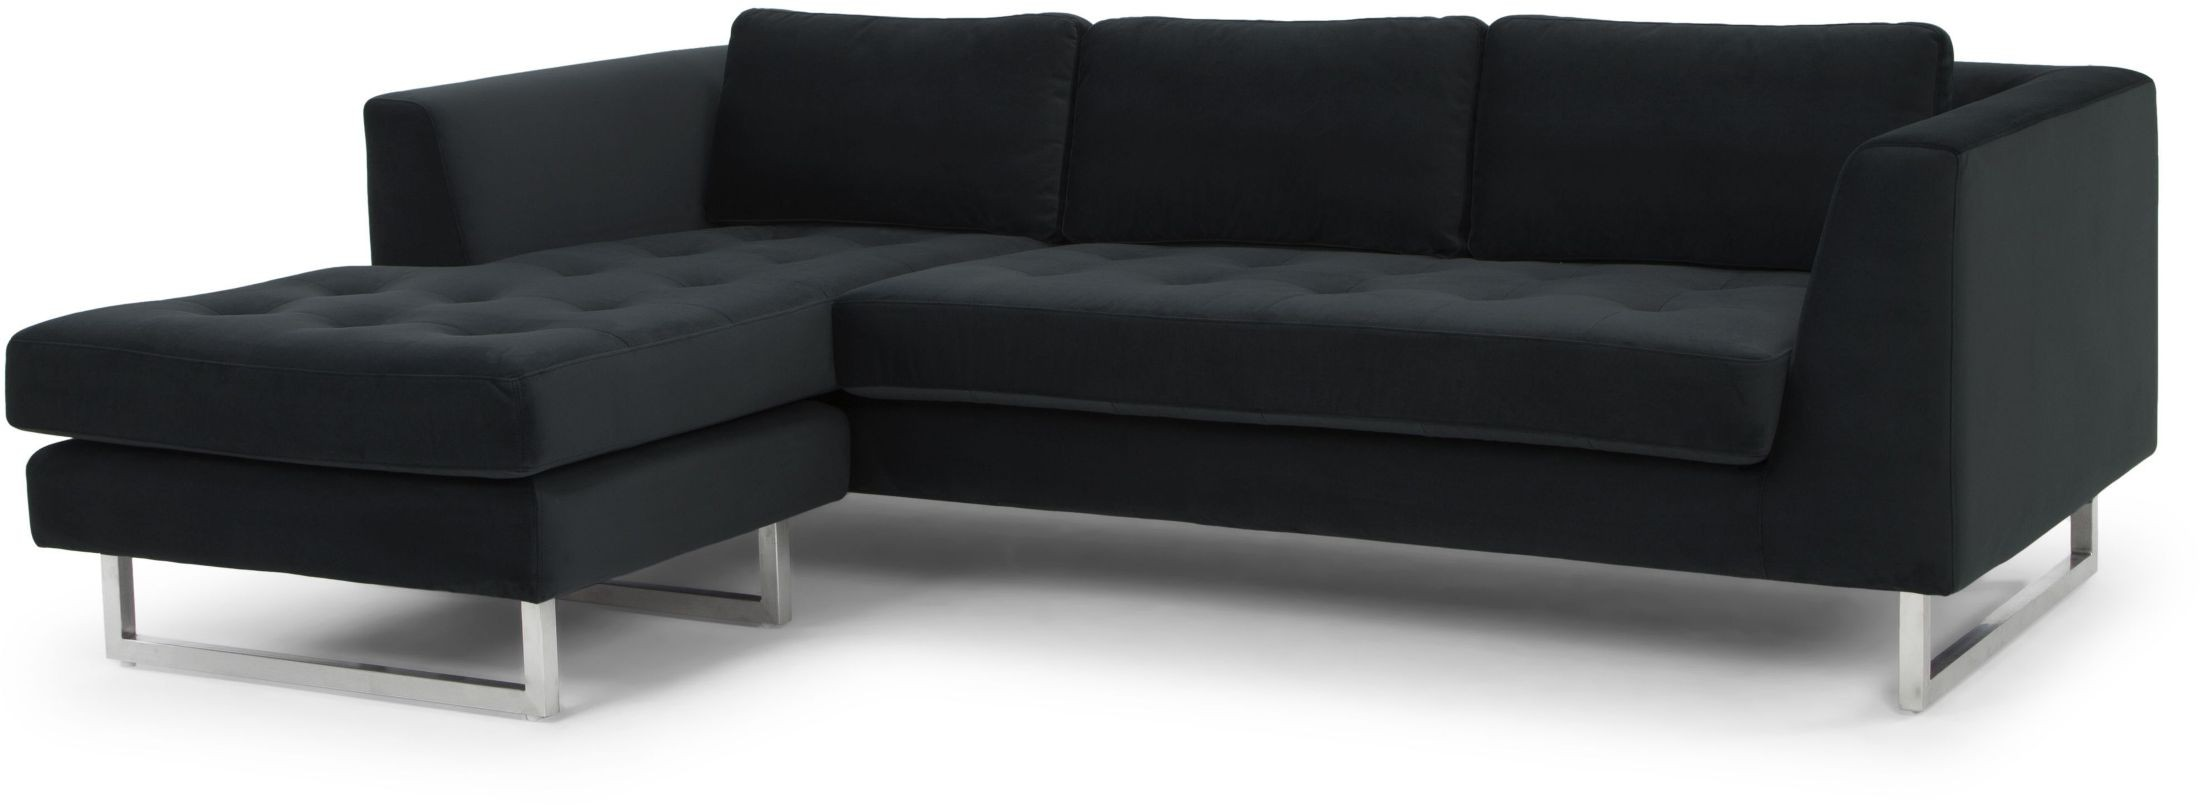 matthew shadow grey fabric sectional sofa from nuevo. Black Bedroom Furniture Sets. Home Design Ideas